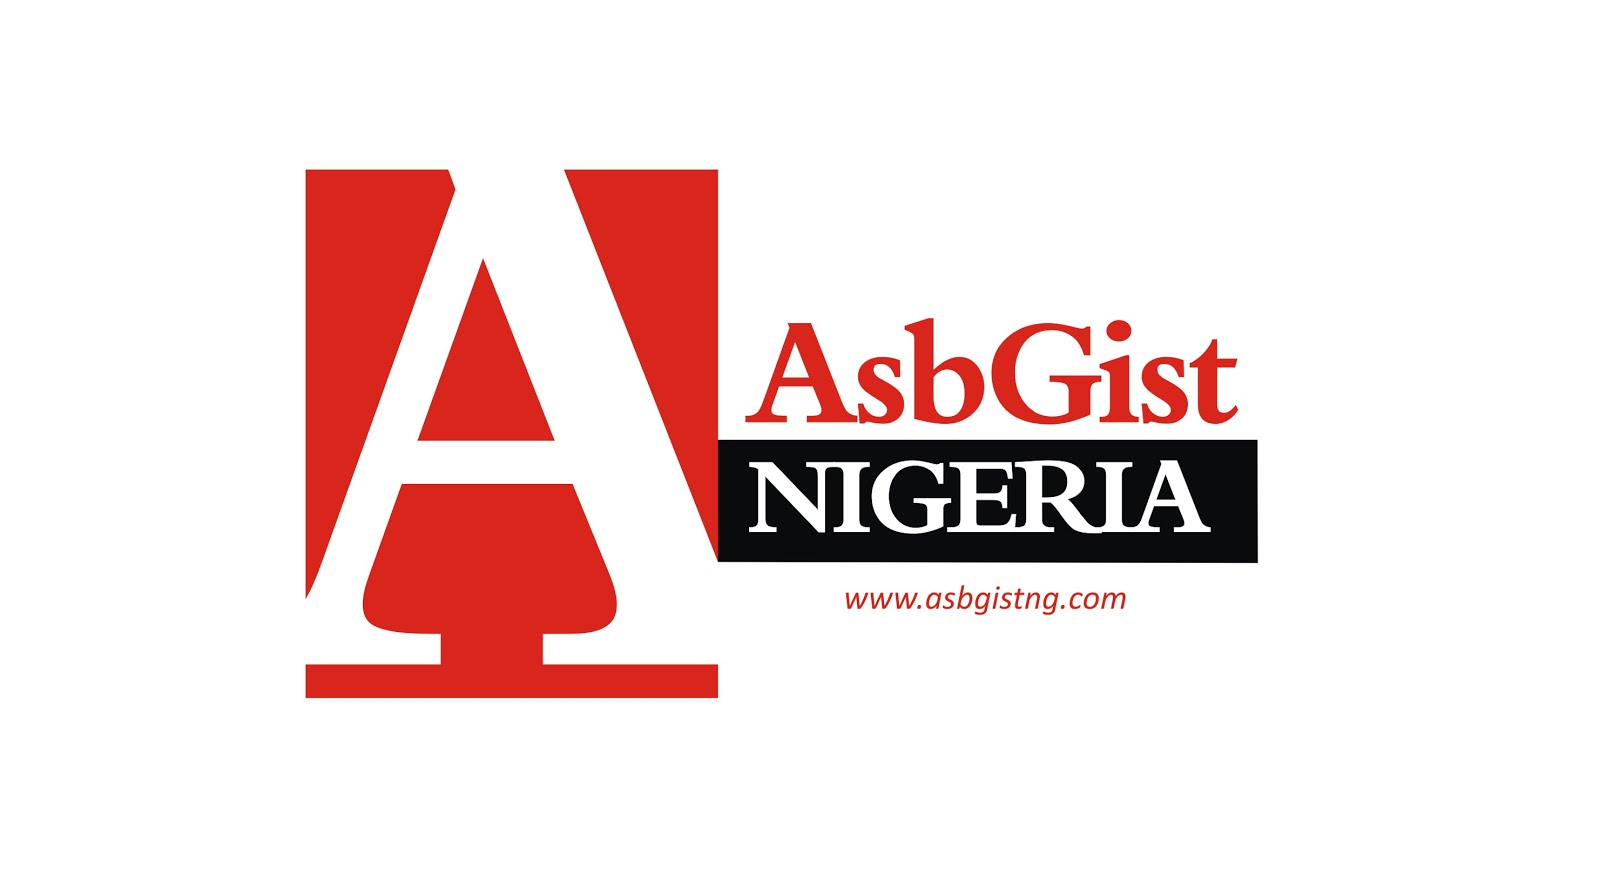 Nigeria News, Nigerian Newspapers - AsbGist Nigeria